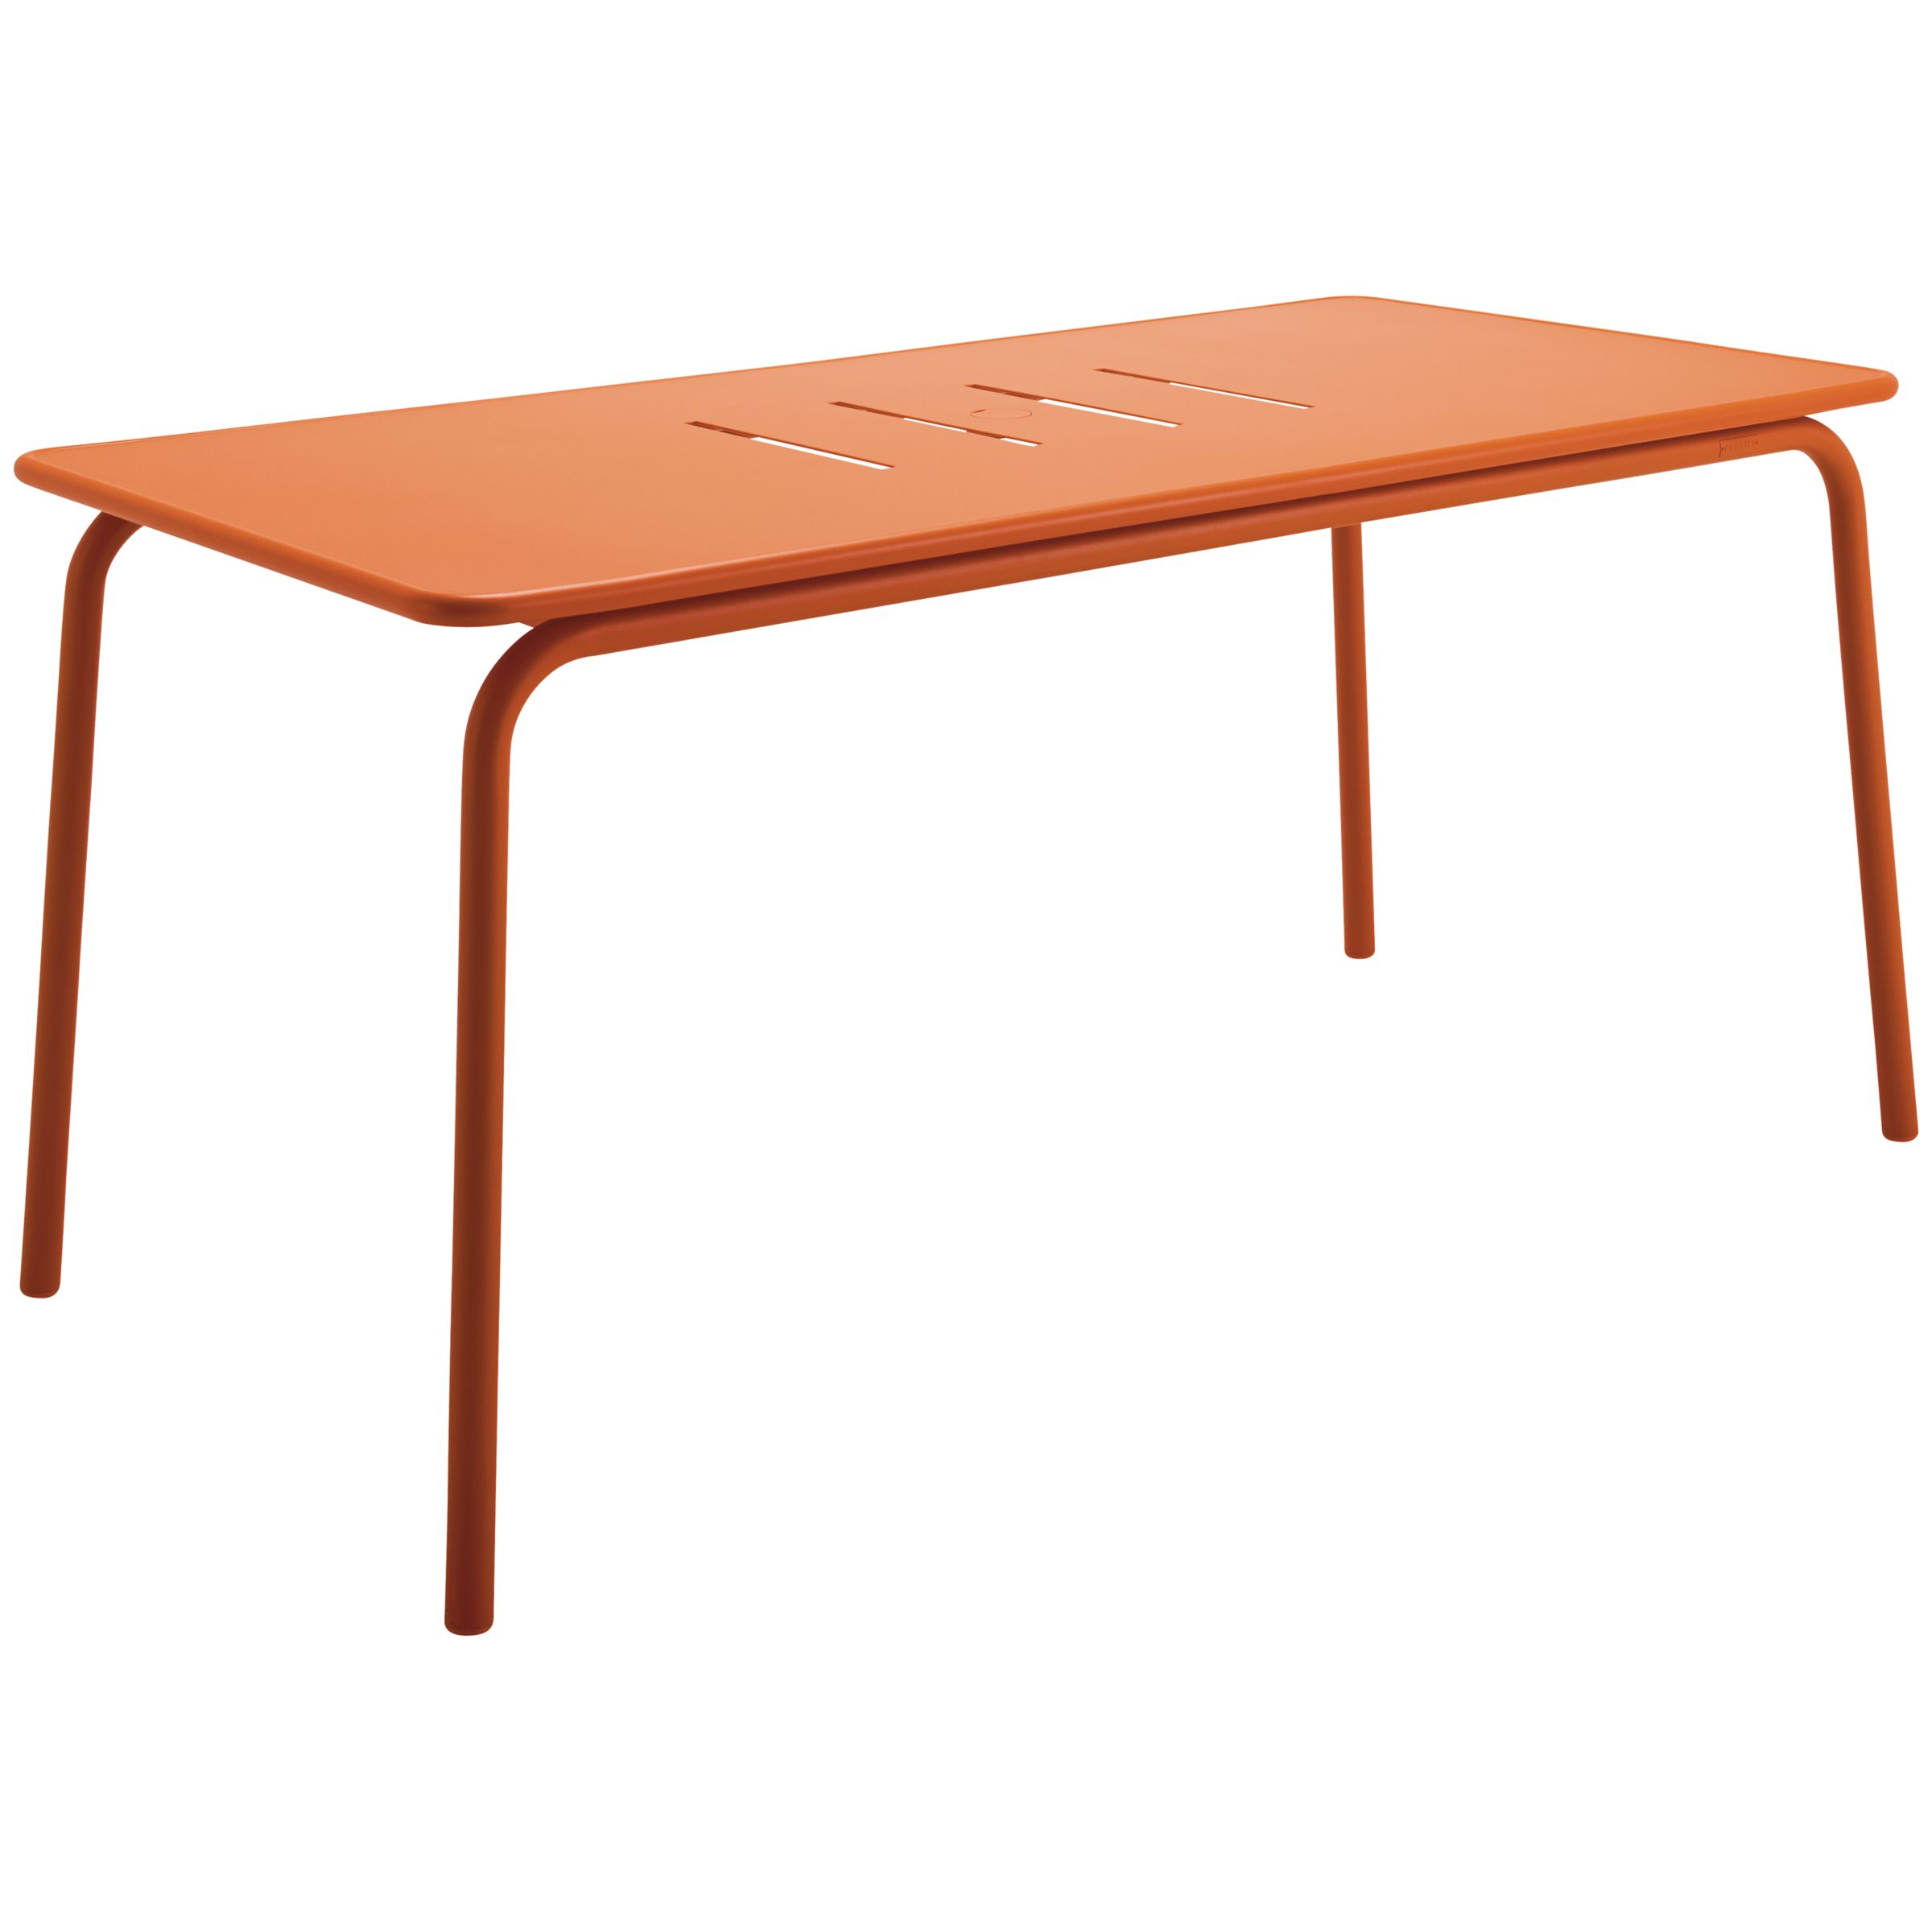 Gloster Nomad Rectangle Dining Table, Flame